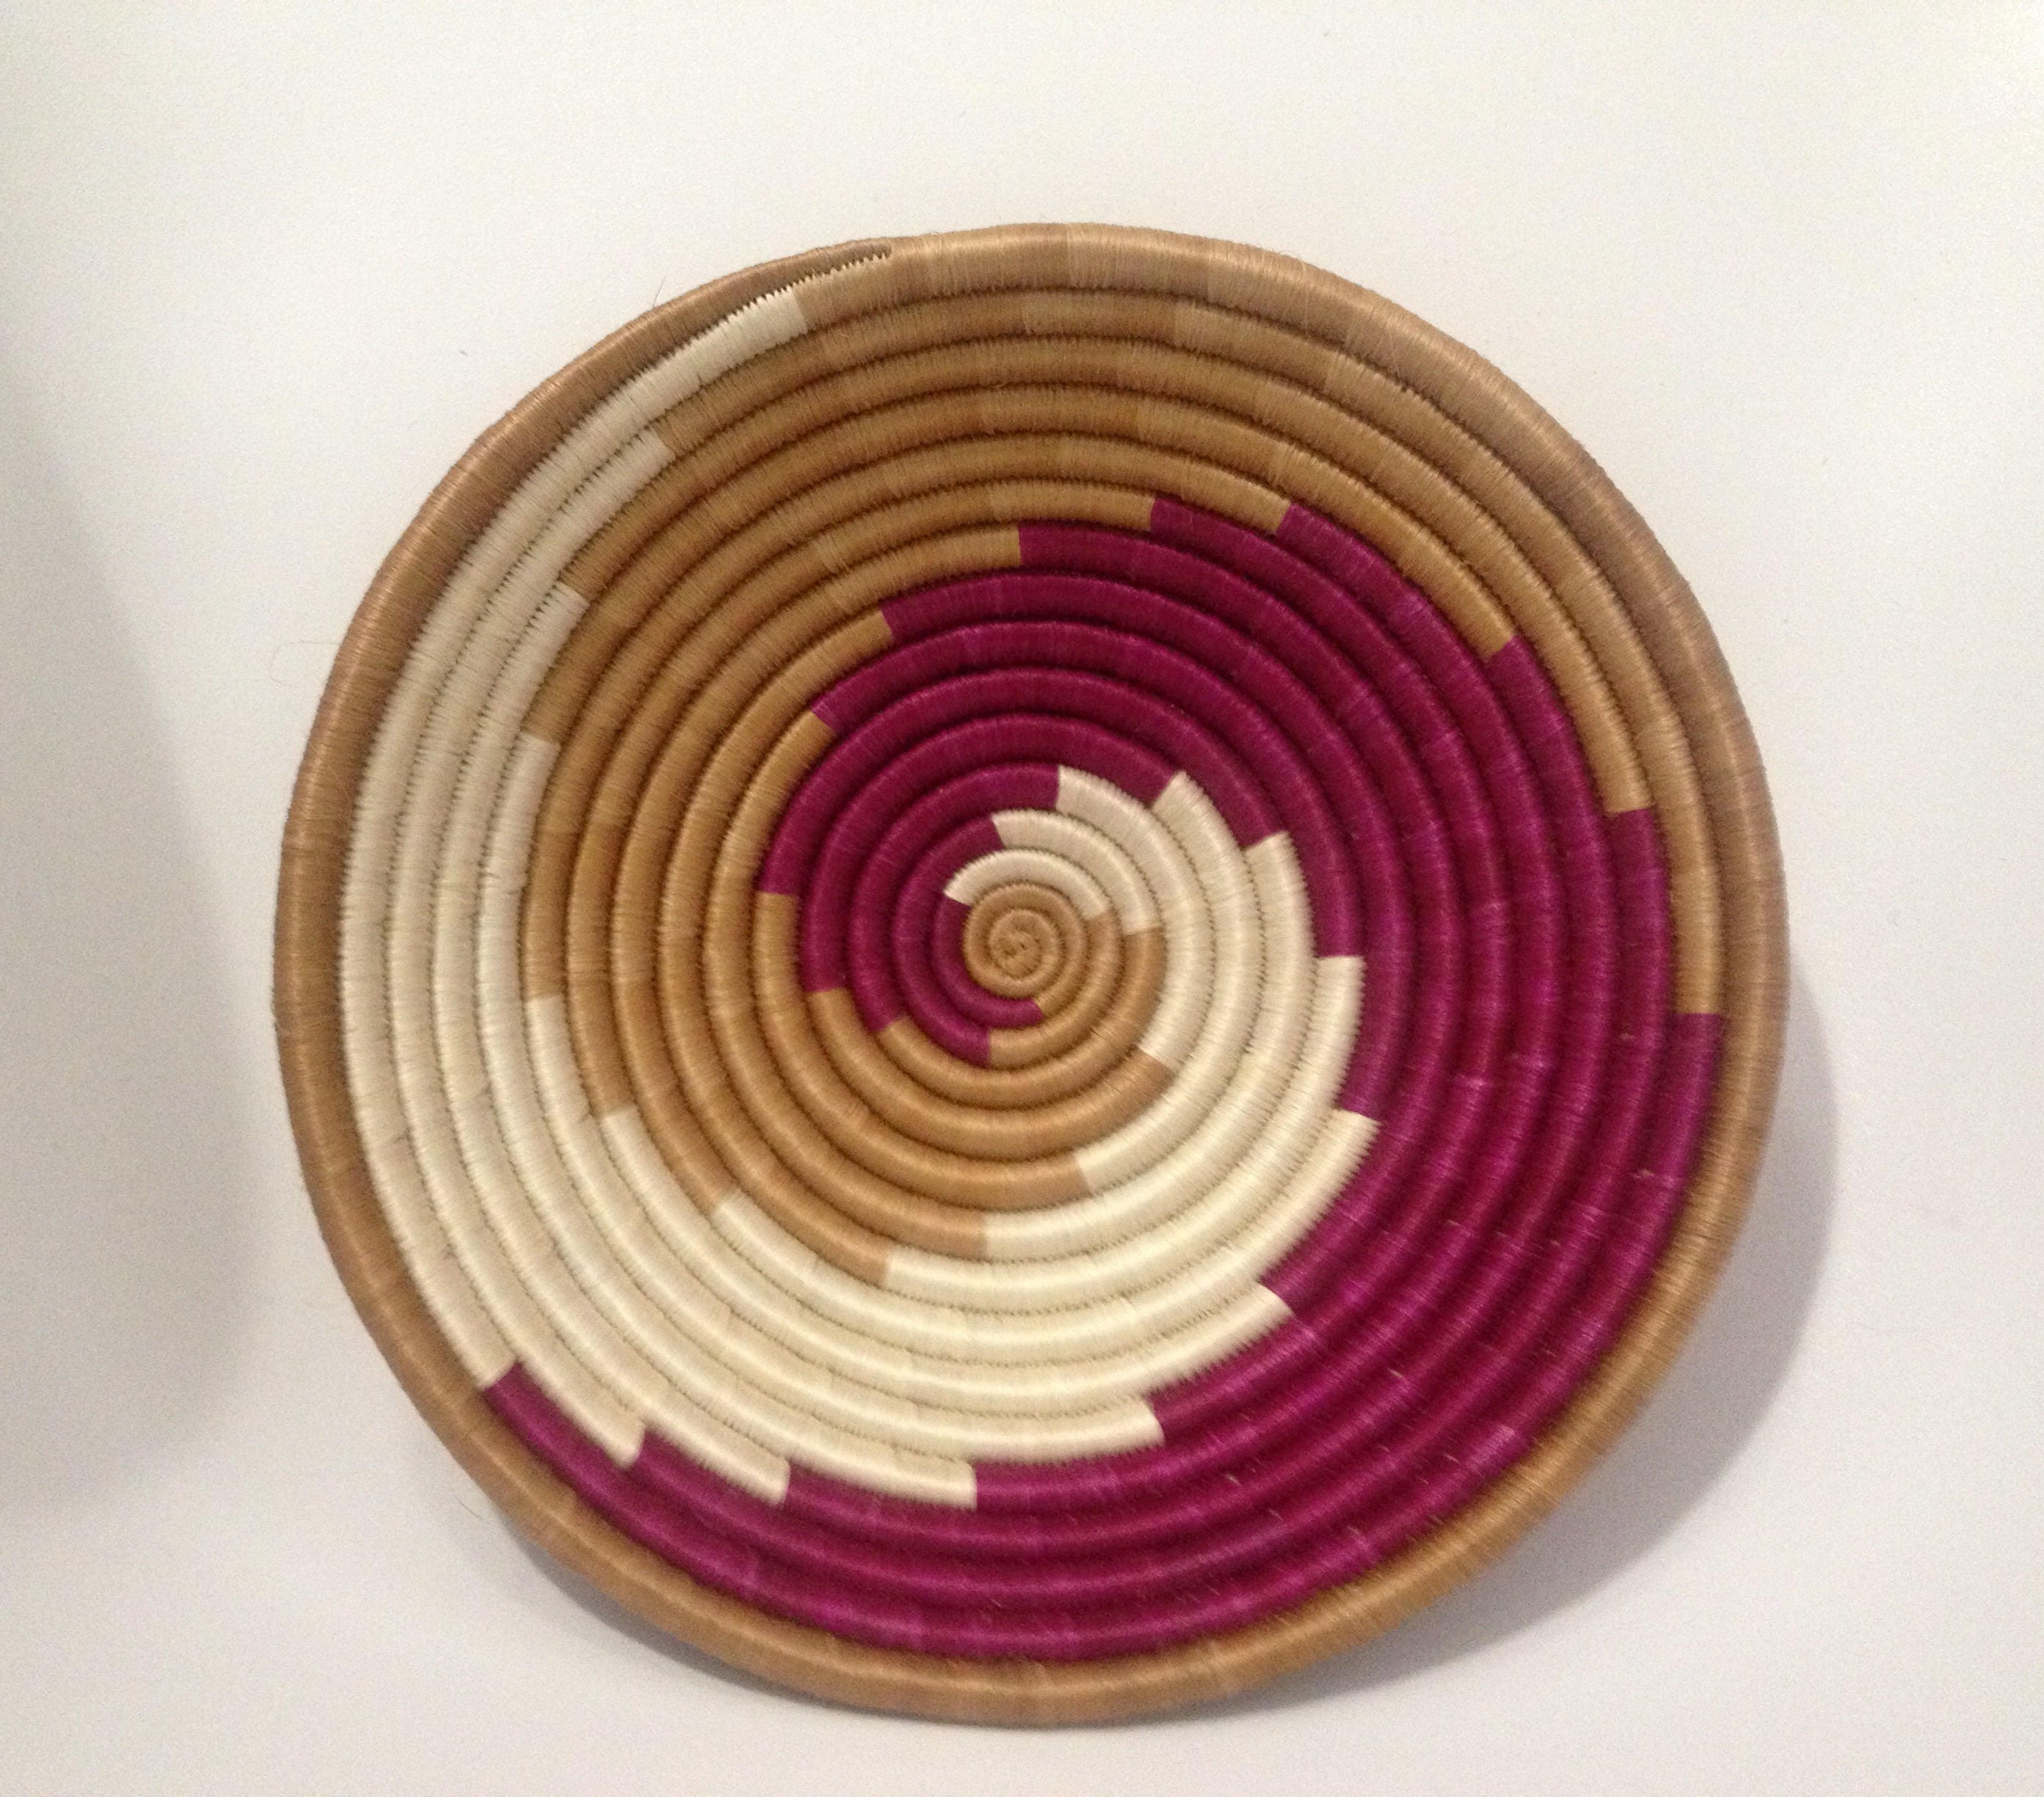 African Woven Baskets: African Woven Basket / / Ethnic Wall Basket / / Handcrafted